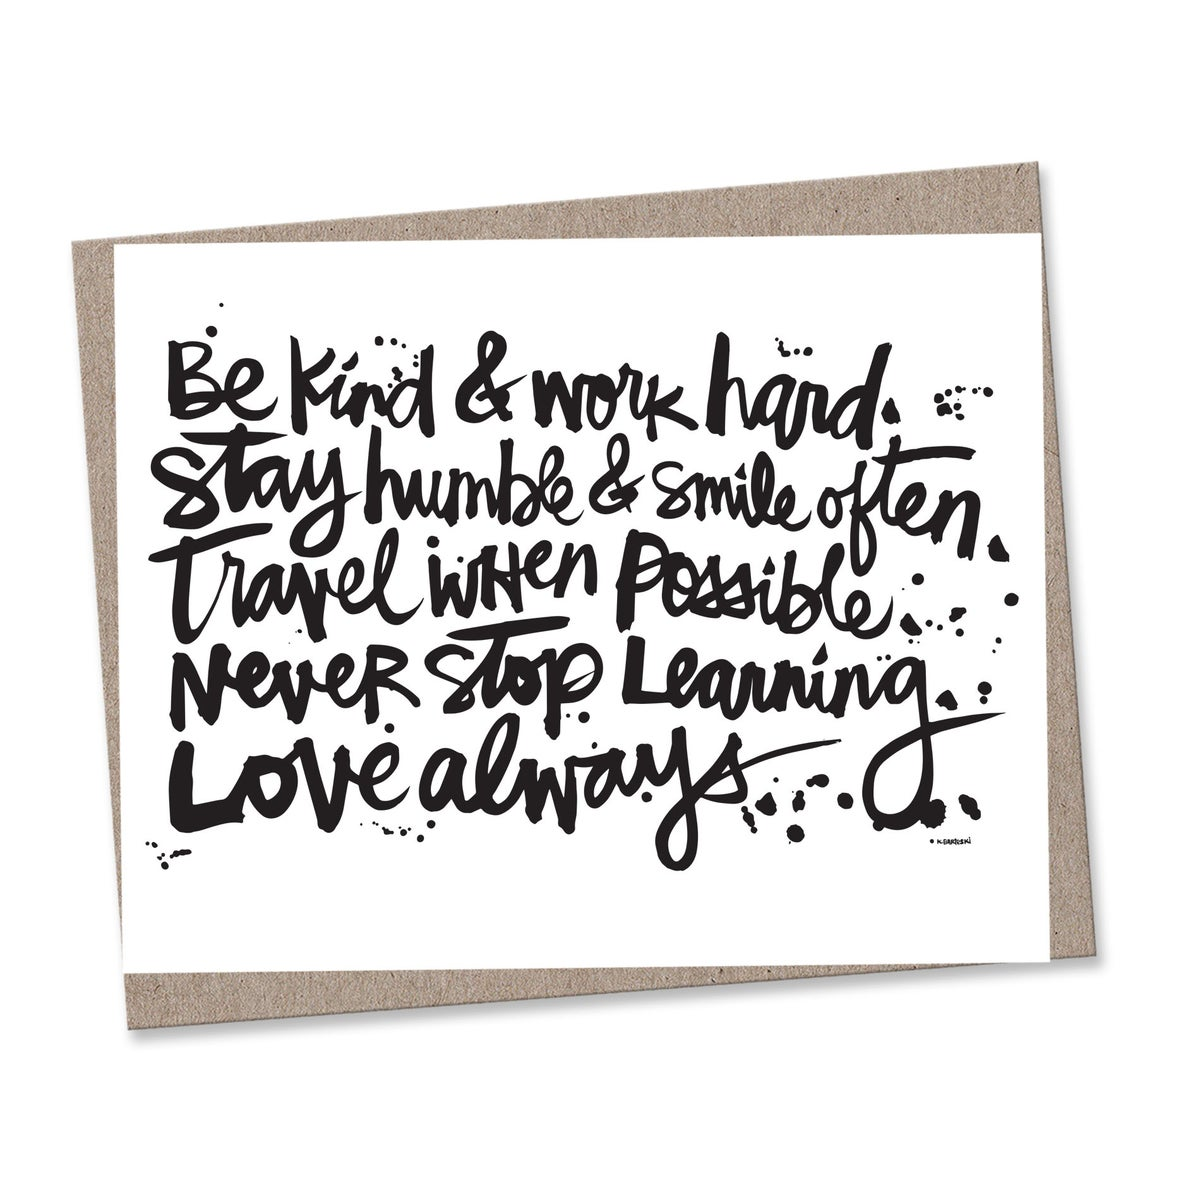 Image of BE KIND + WORK HARD #kbscript print